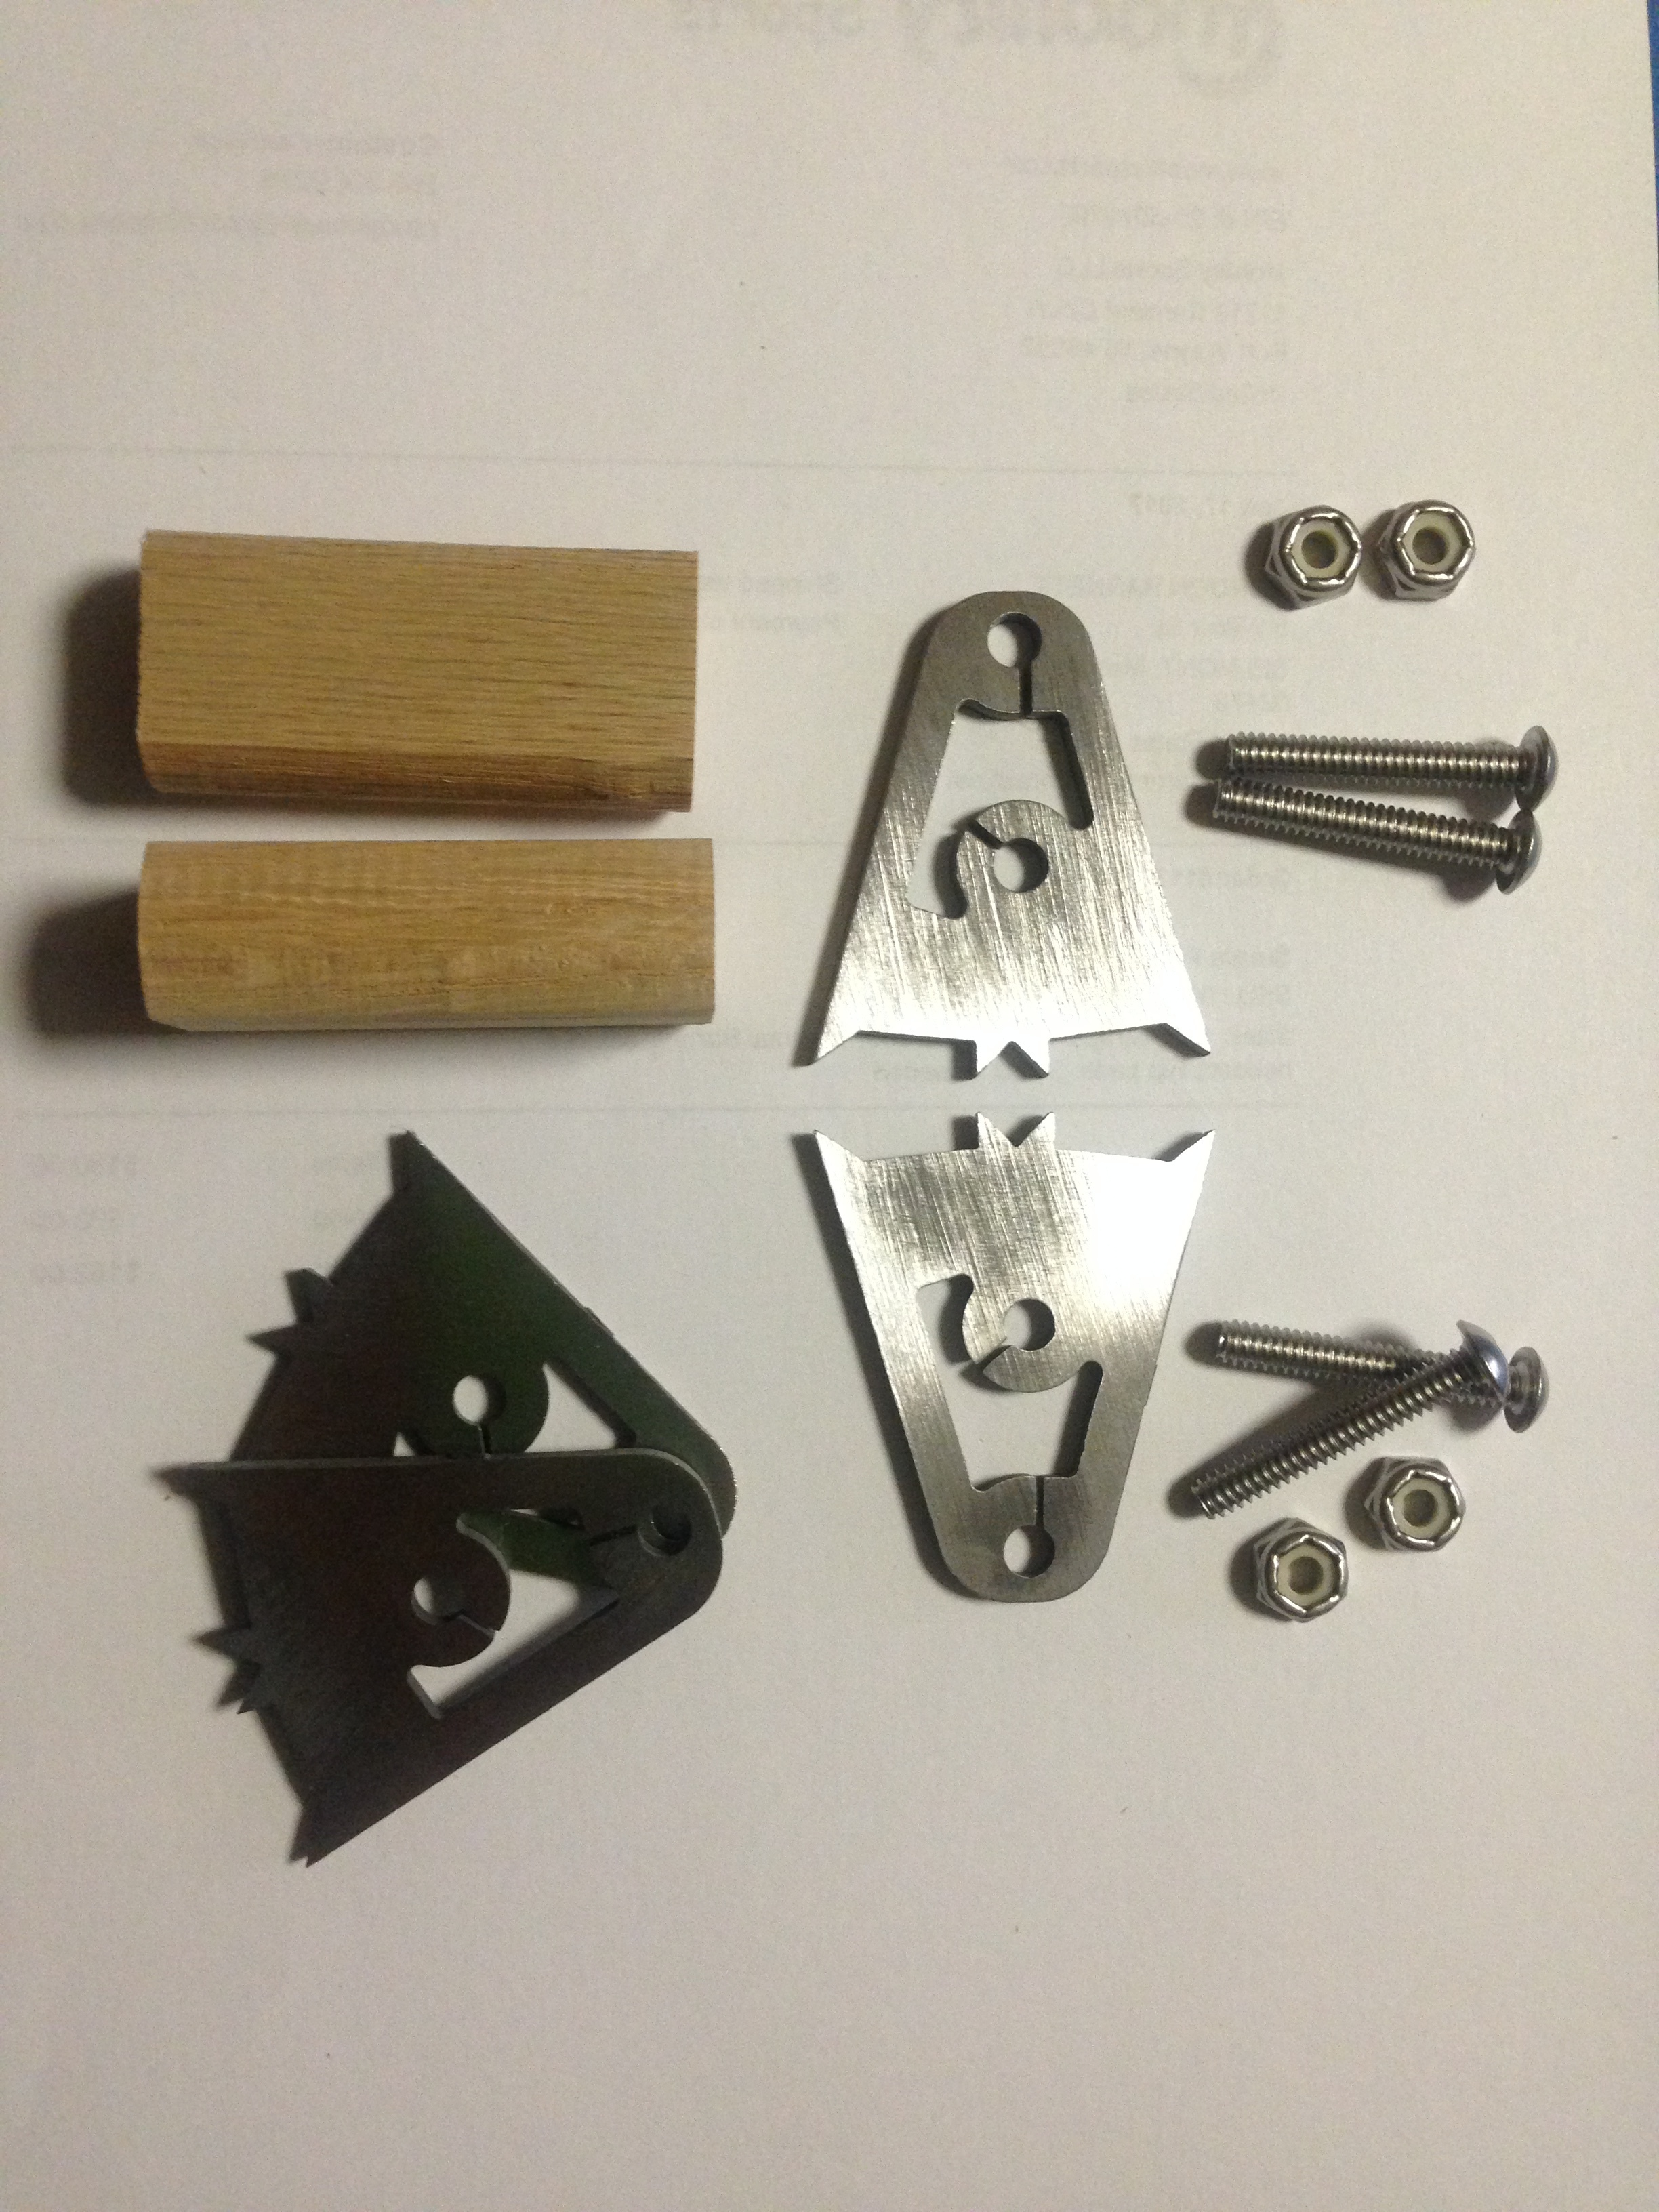 4-point pick kit 00018